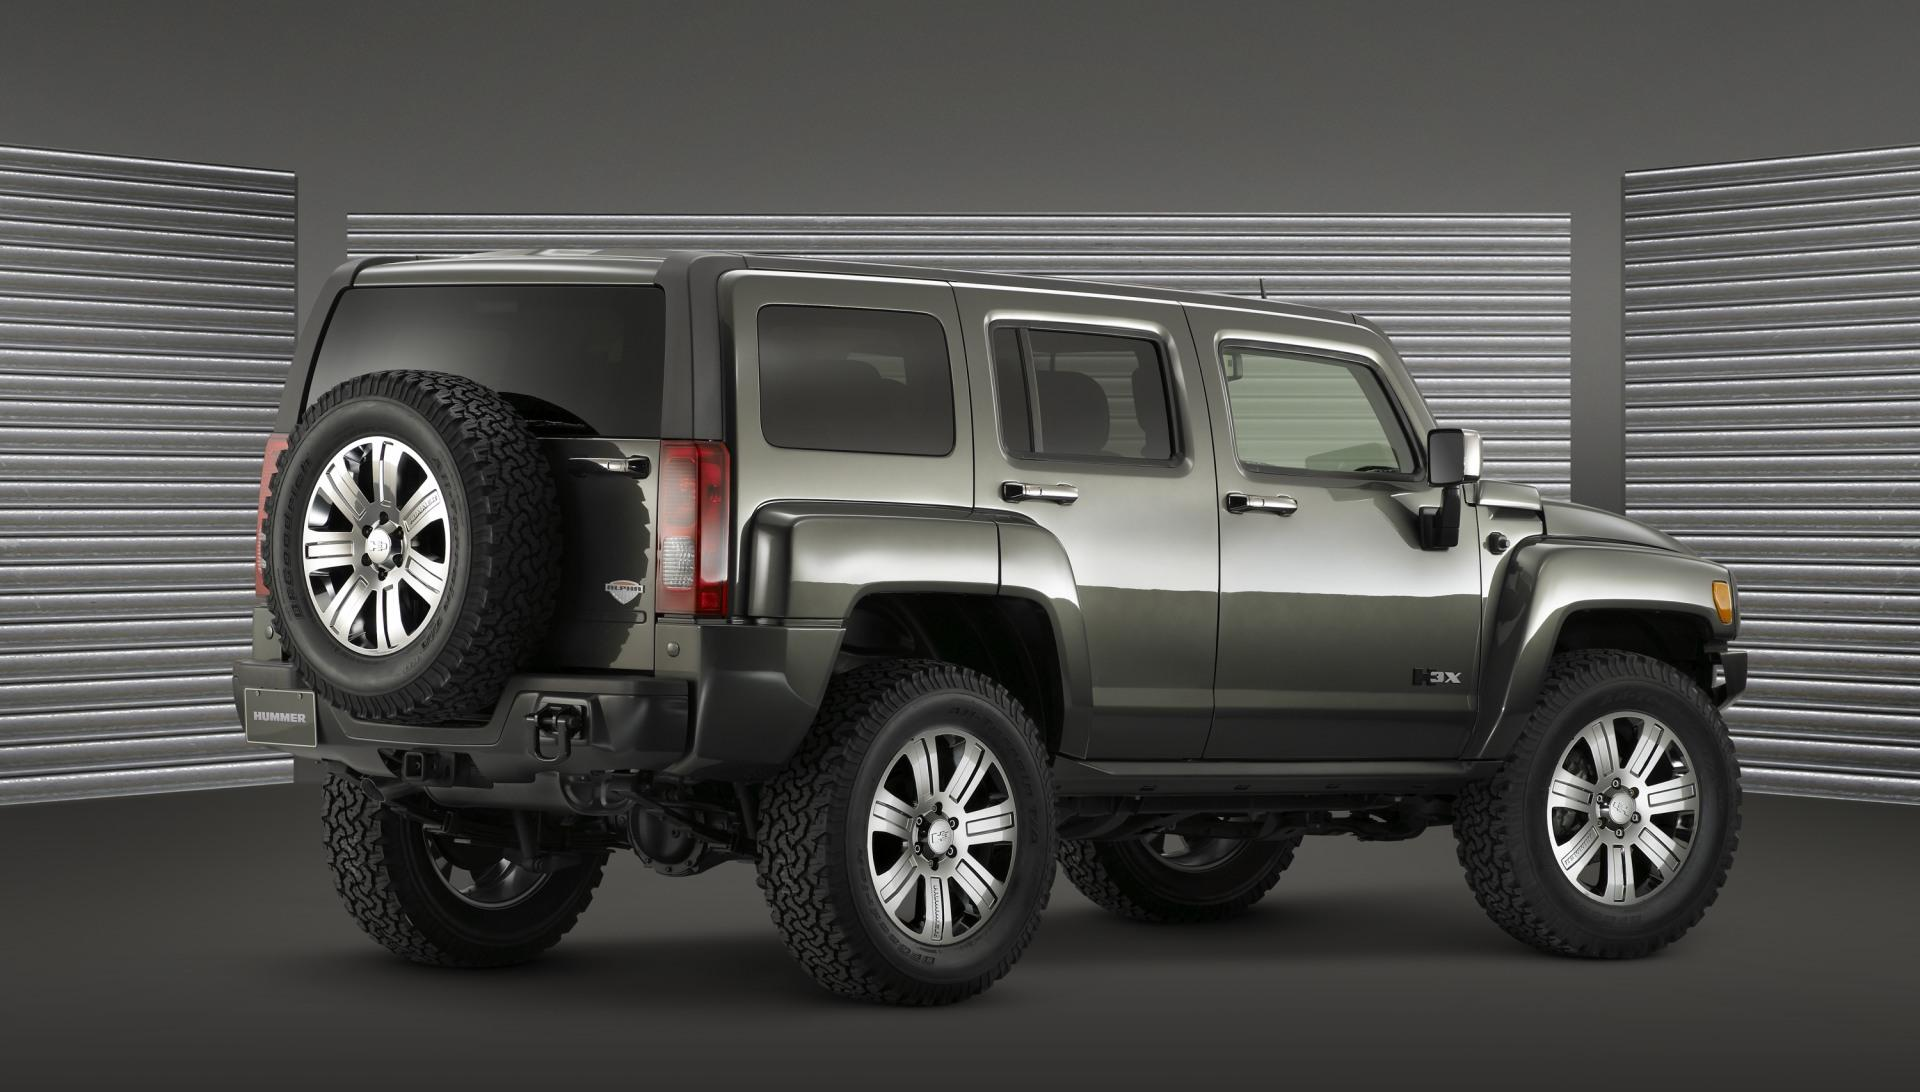 2009 Hummer H3 X Concept Image